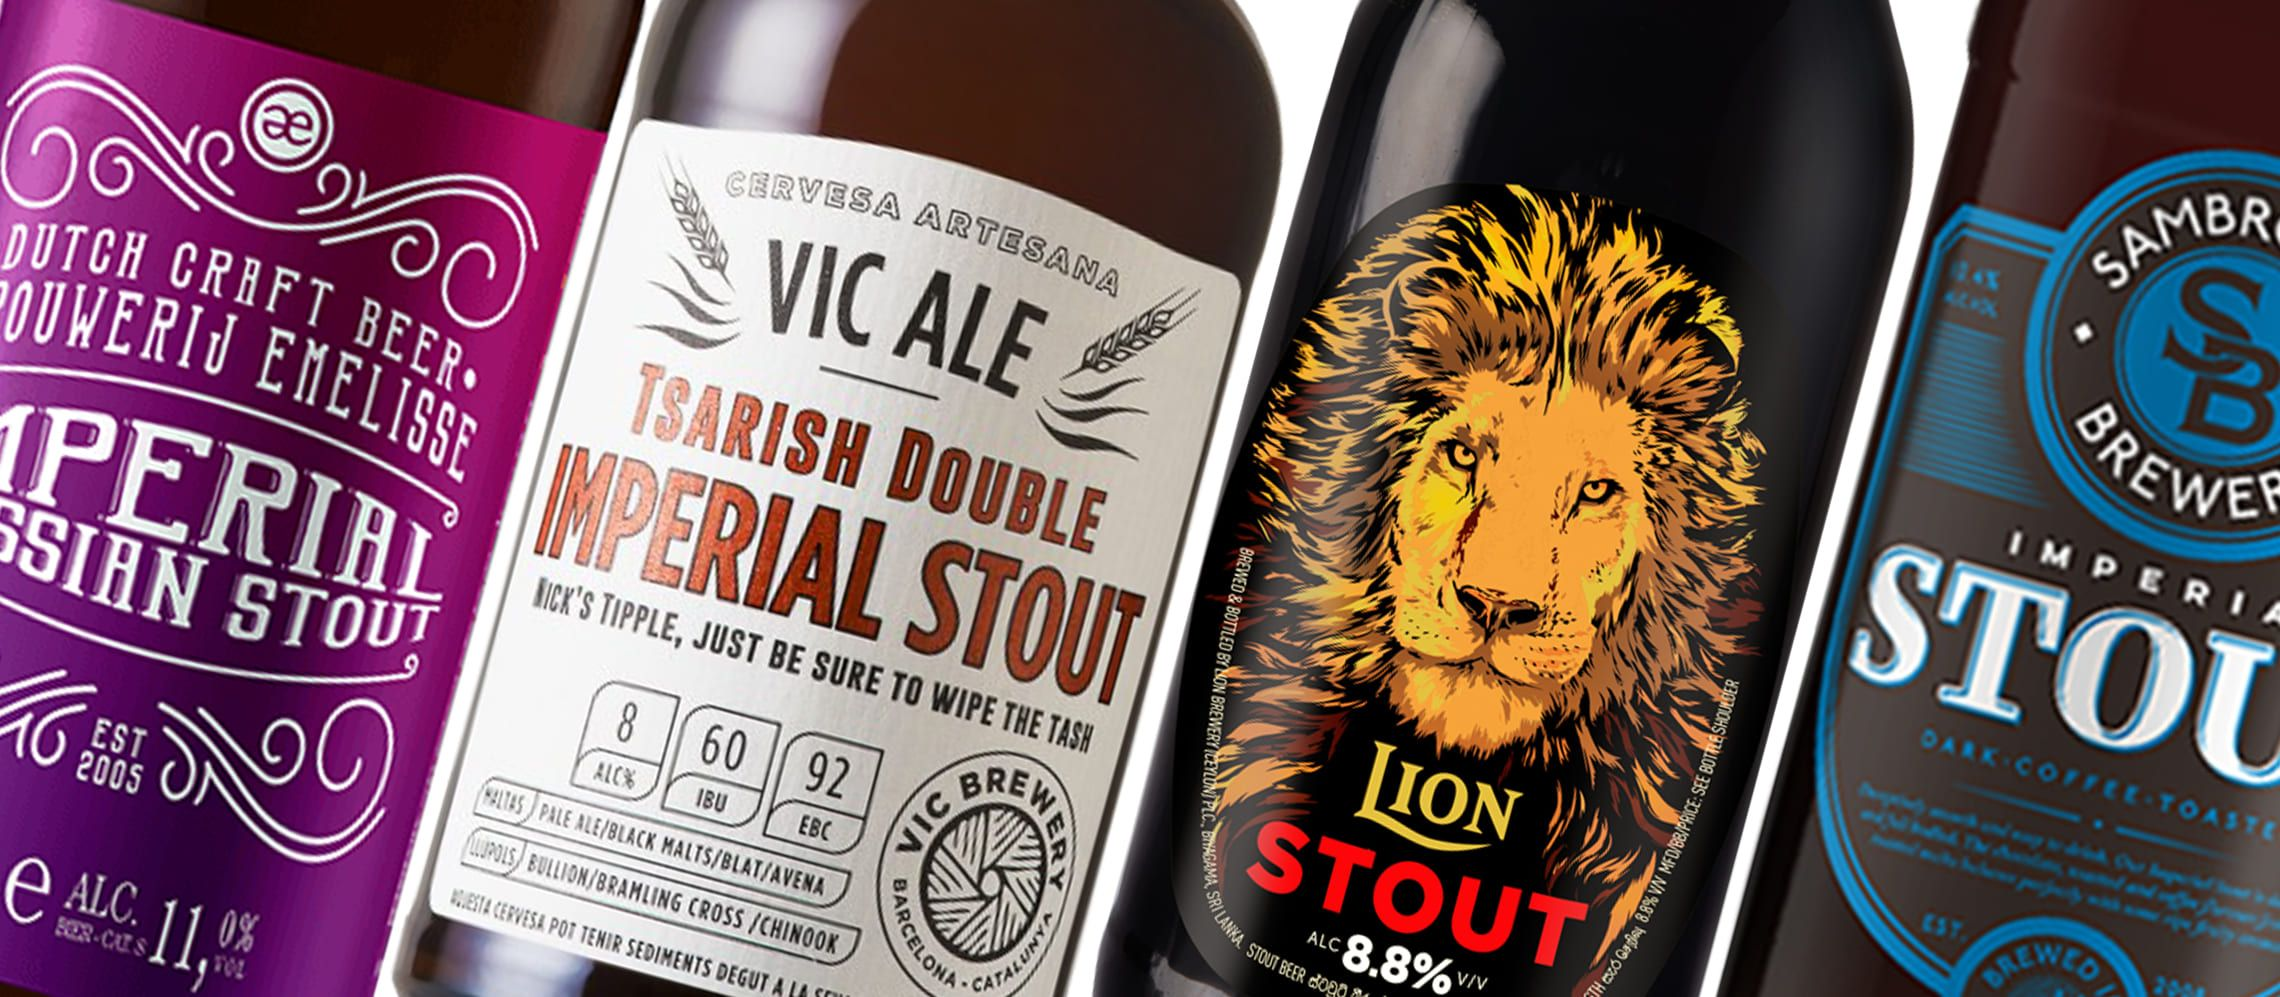 Photo for: 10 Best Stout Beers to Try This Weekend